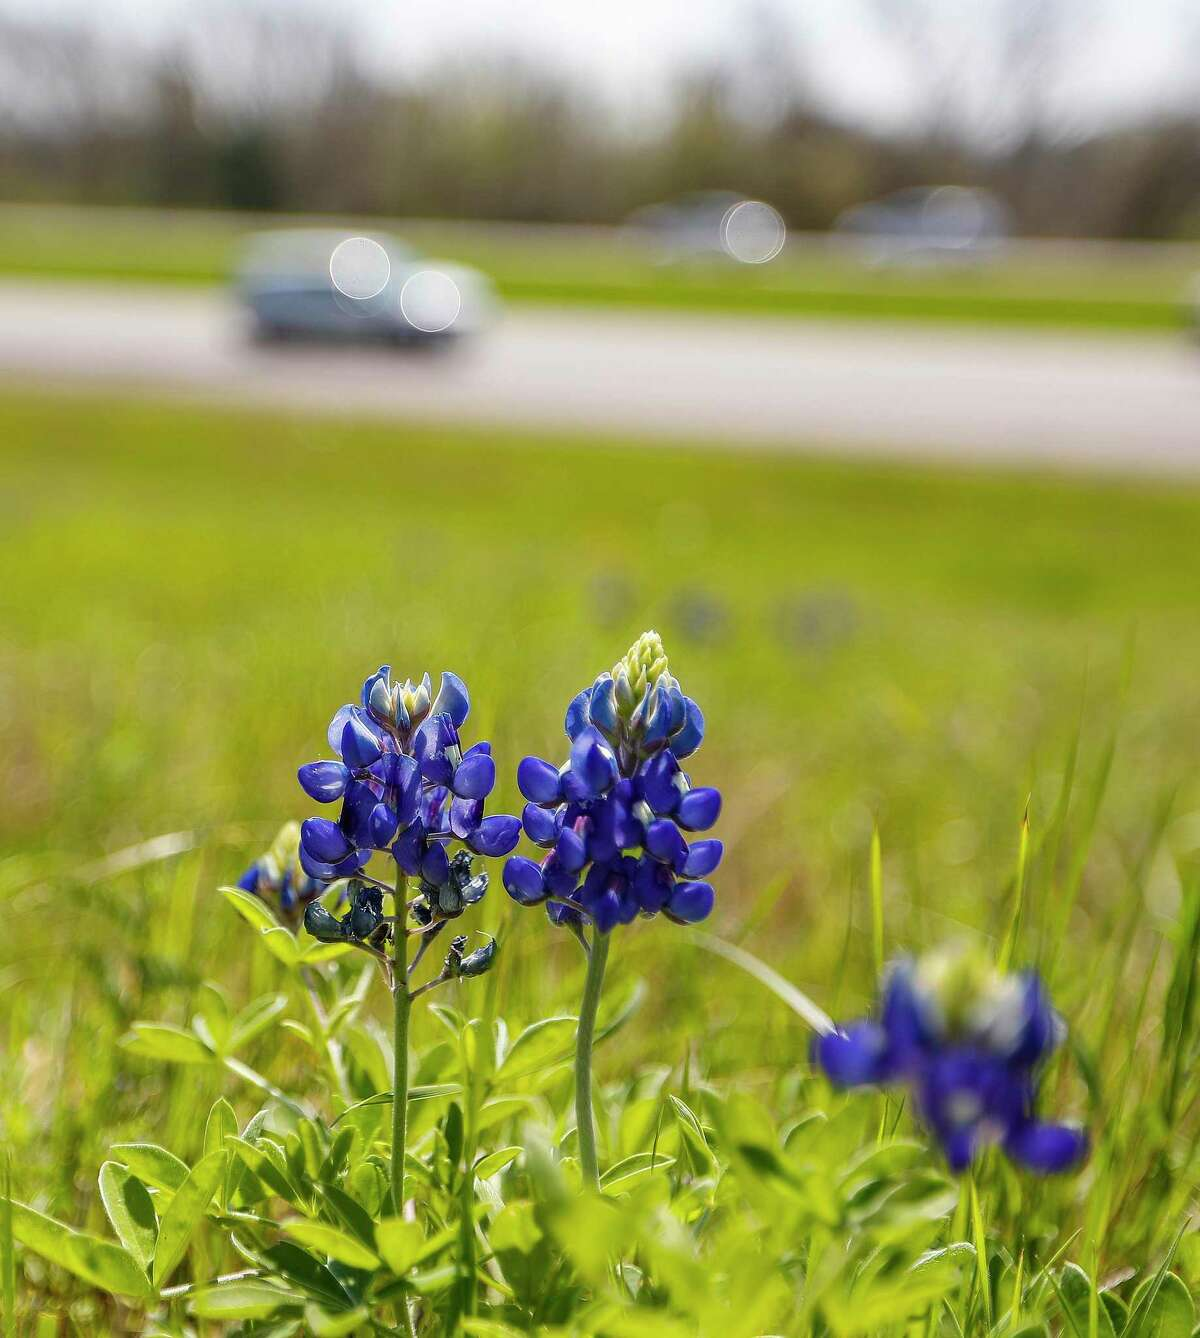 Bluebonnets and other wildflowers are just starting to emerge near Chappell Hill, outside of Brenham on Highway 290. Wildflowers will be a little late this year, but the freeze may have helped them because the blanket of snow would have insulated them from the cold and provided water they needed.